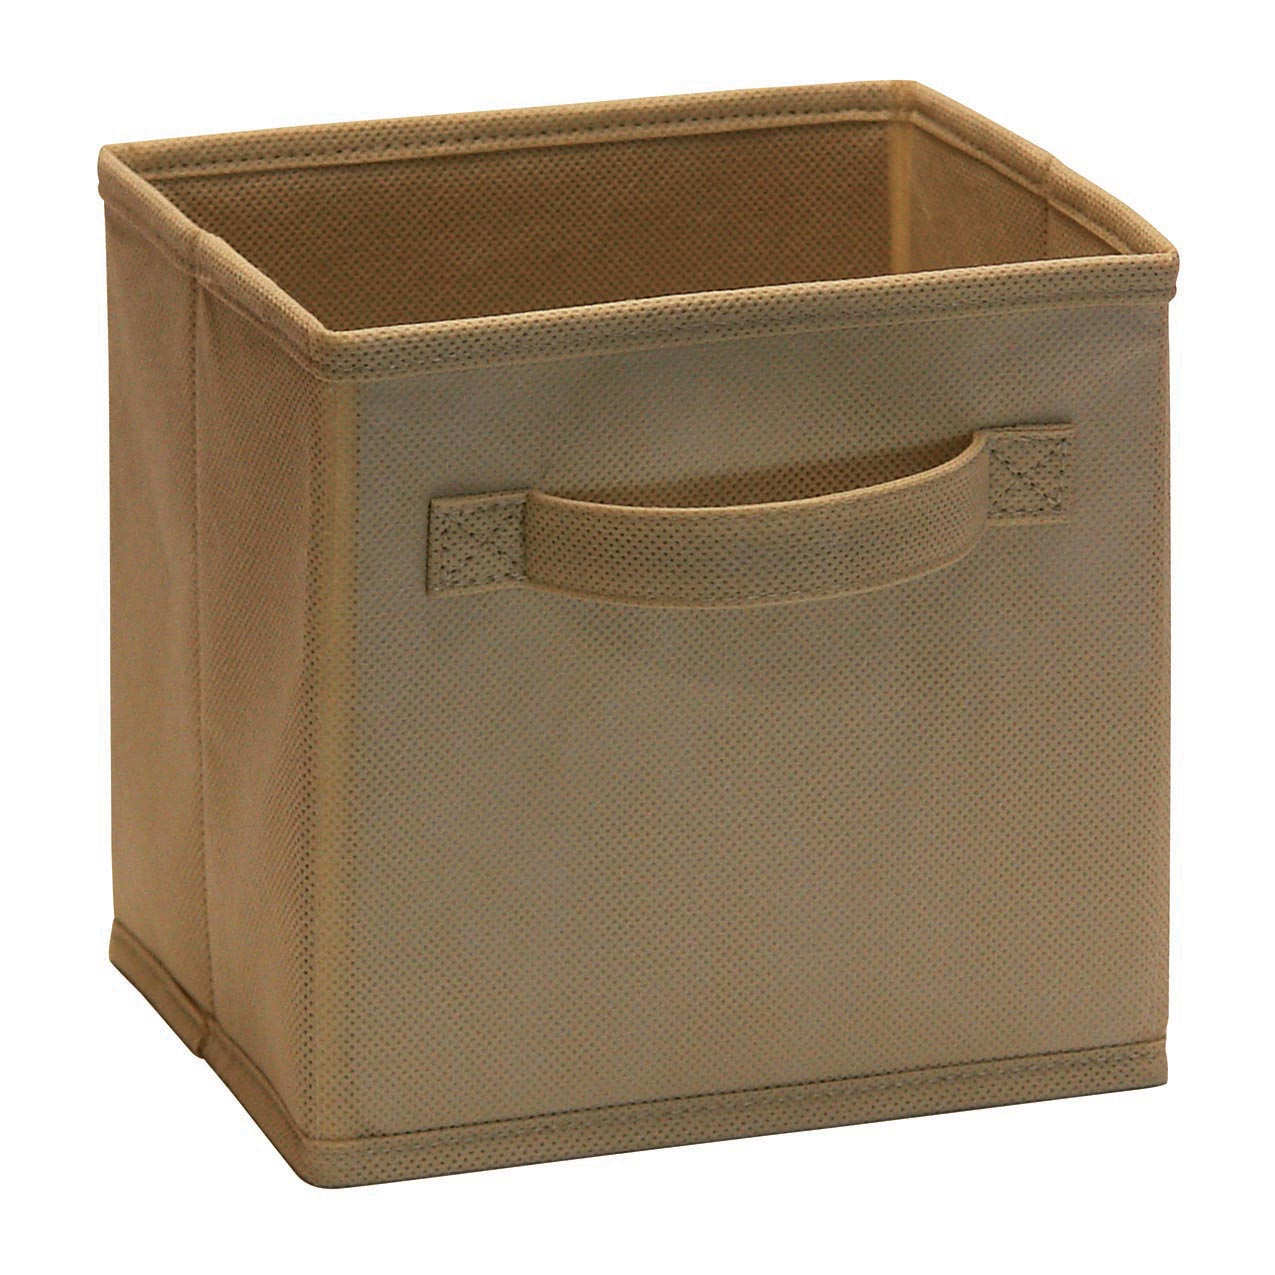 ClosetMaid 785 Cubeicals Fabric Drawer Mocha. About This Product. Picture 1  Of 2; Picture 2 Of 2